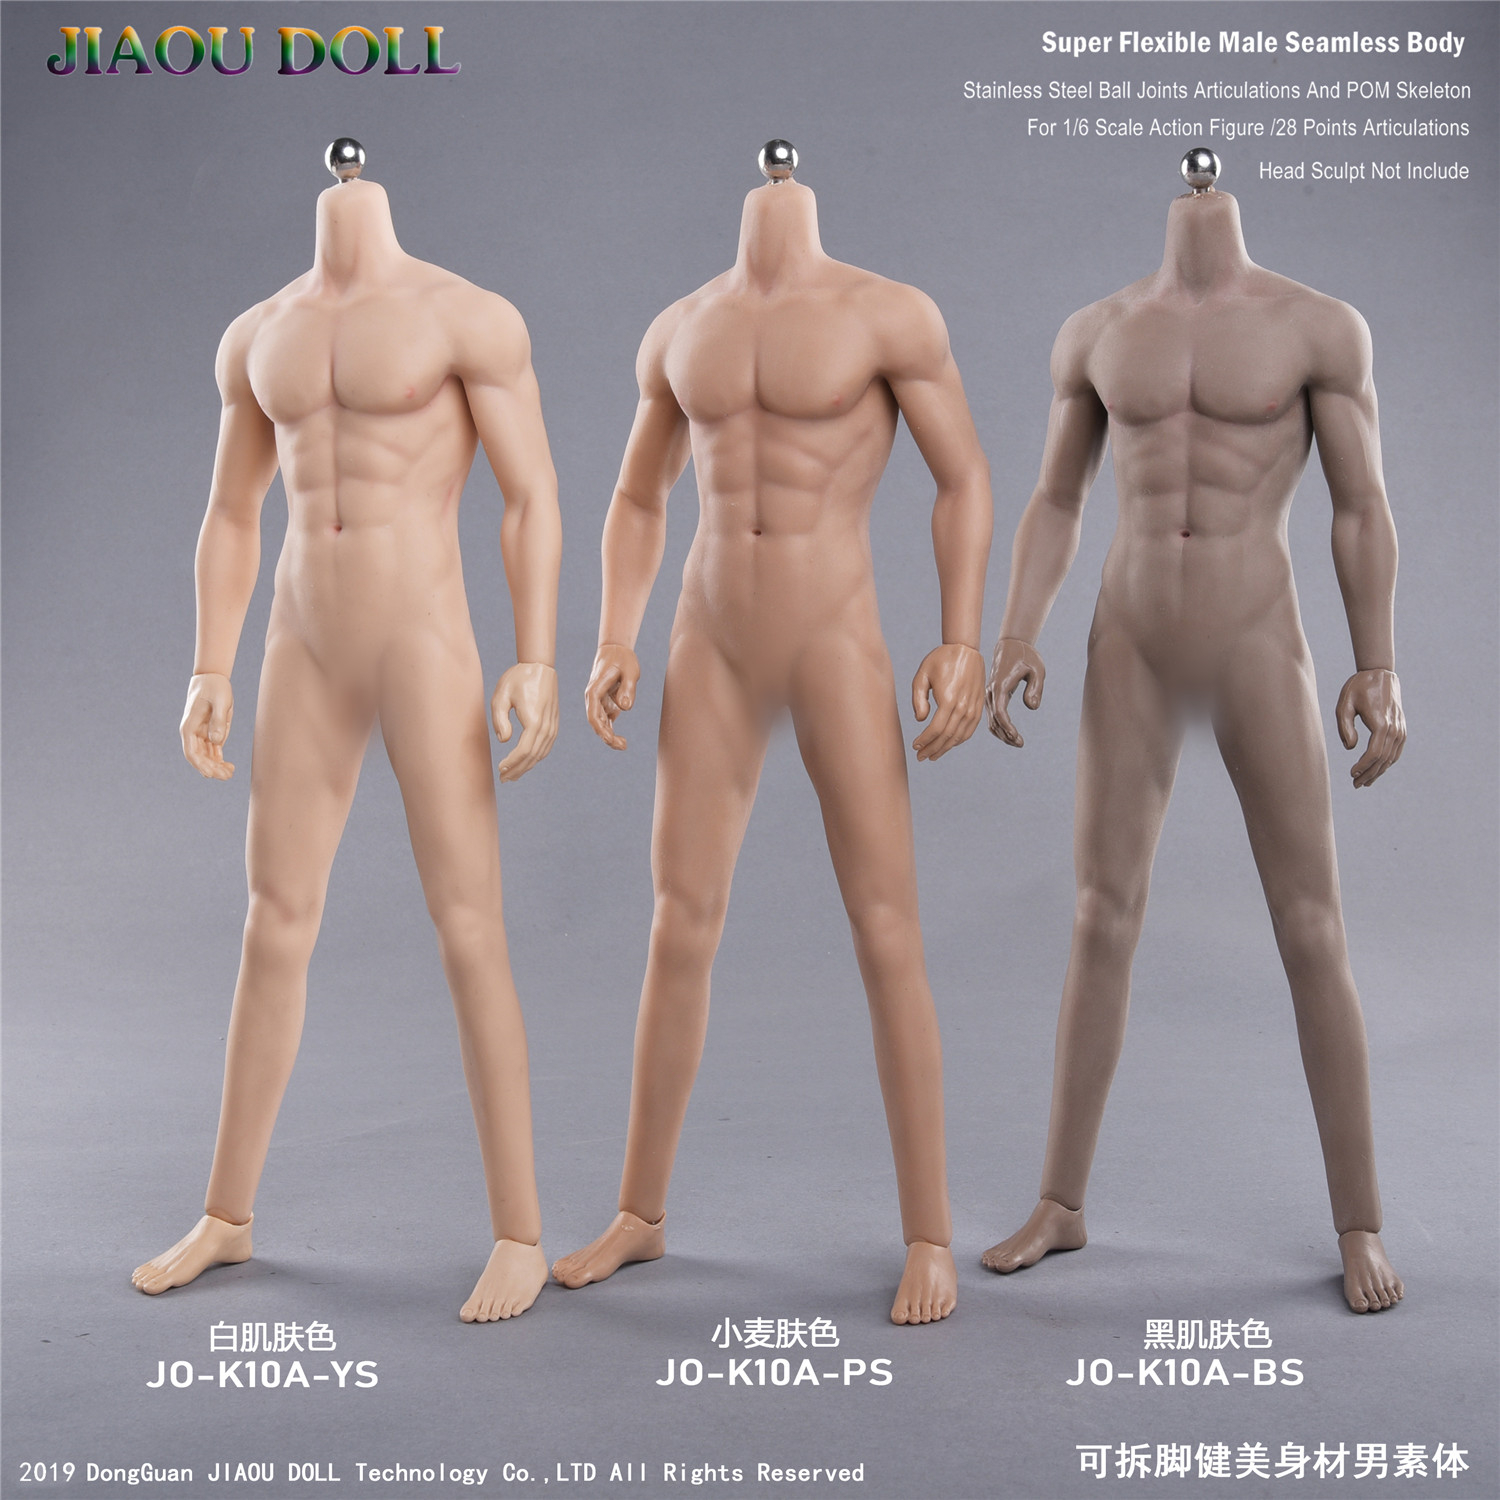 Pre-Order Jiaou Doll 1/6 Muscular Body Figure Male Seamless Body Stainless Steel Ball Joint Pom Skeleton 12 Inches Action Figure